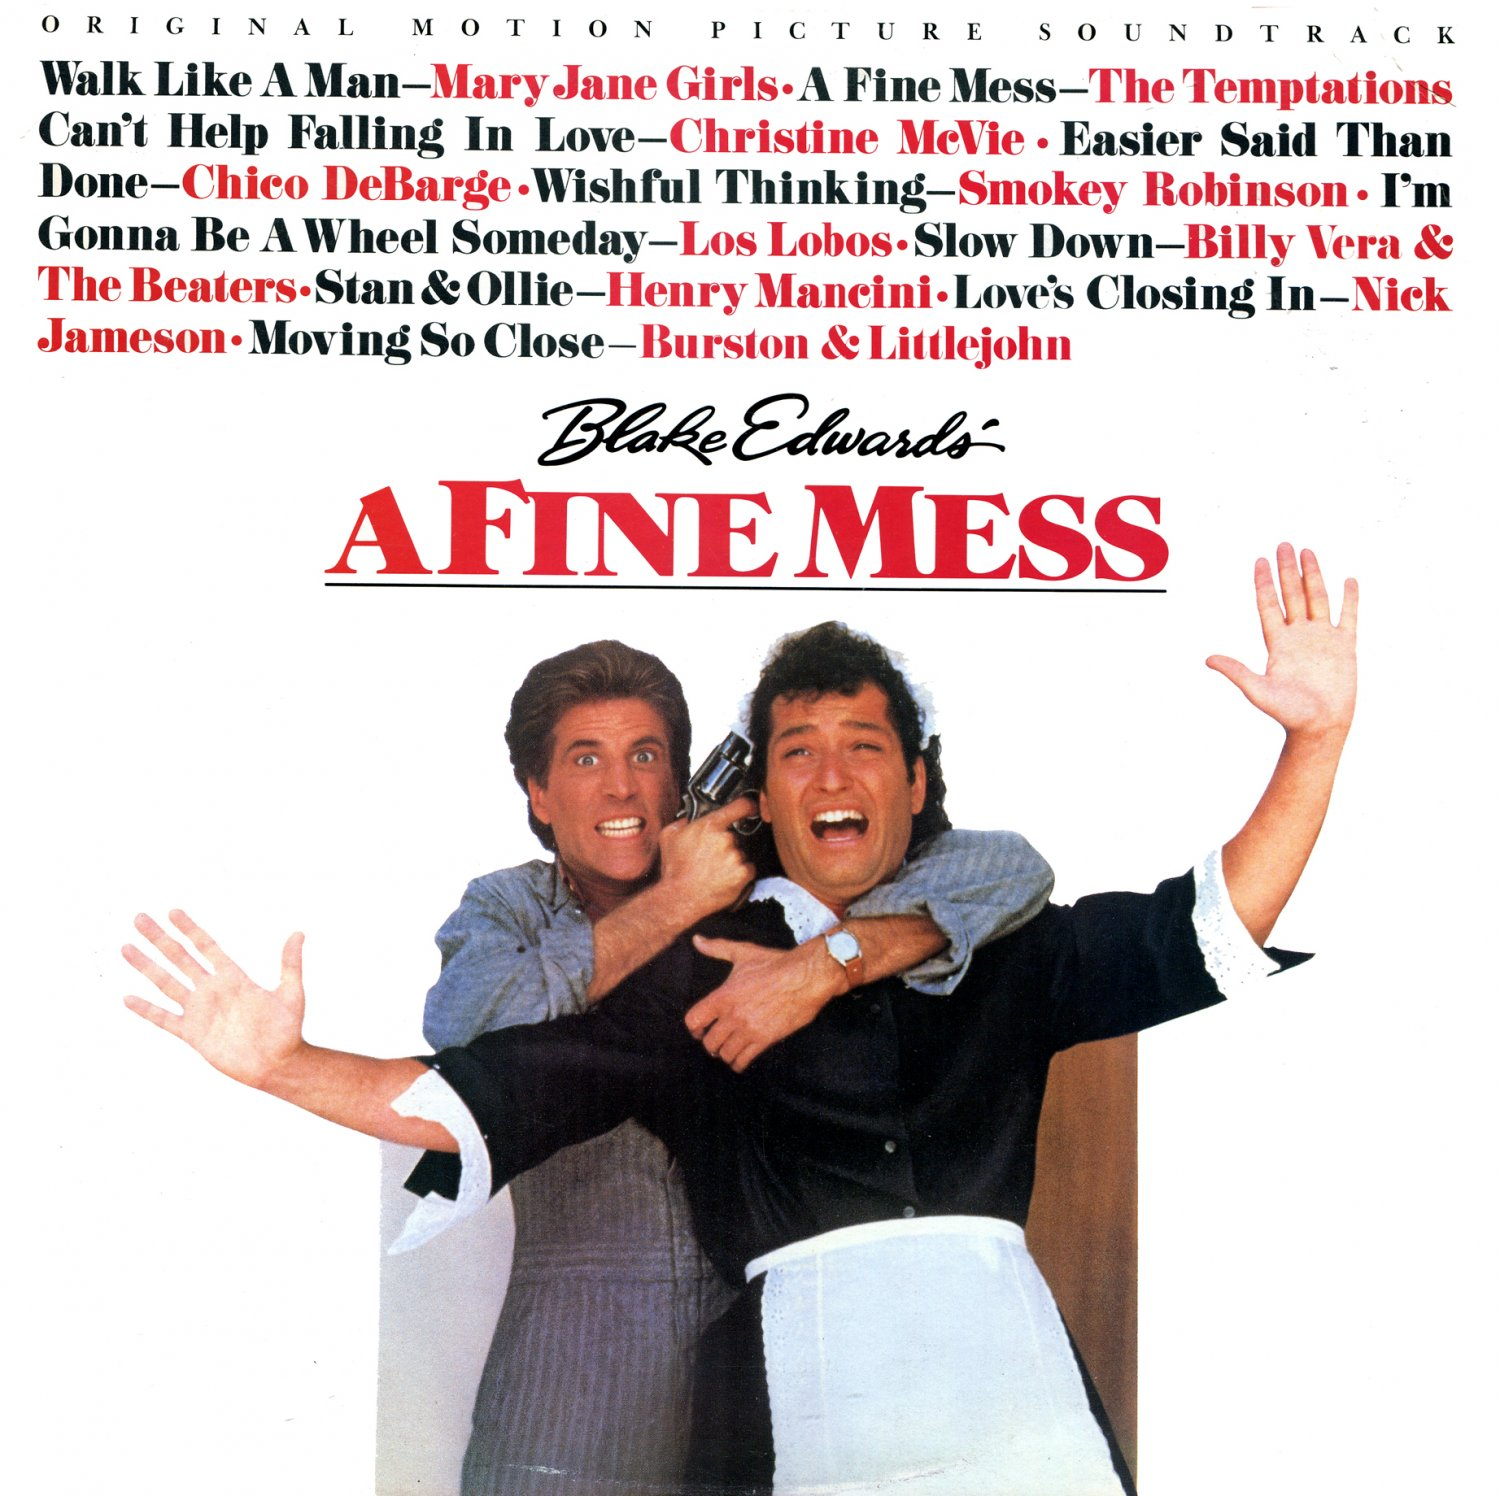 A Fine Mess - Original Soundtrack, Henry Mancini OST LP/CD